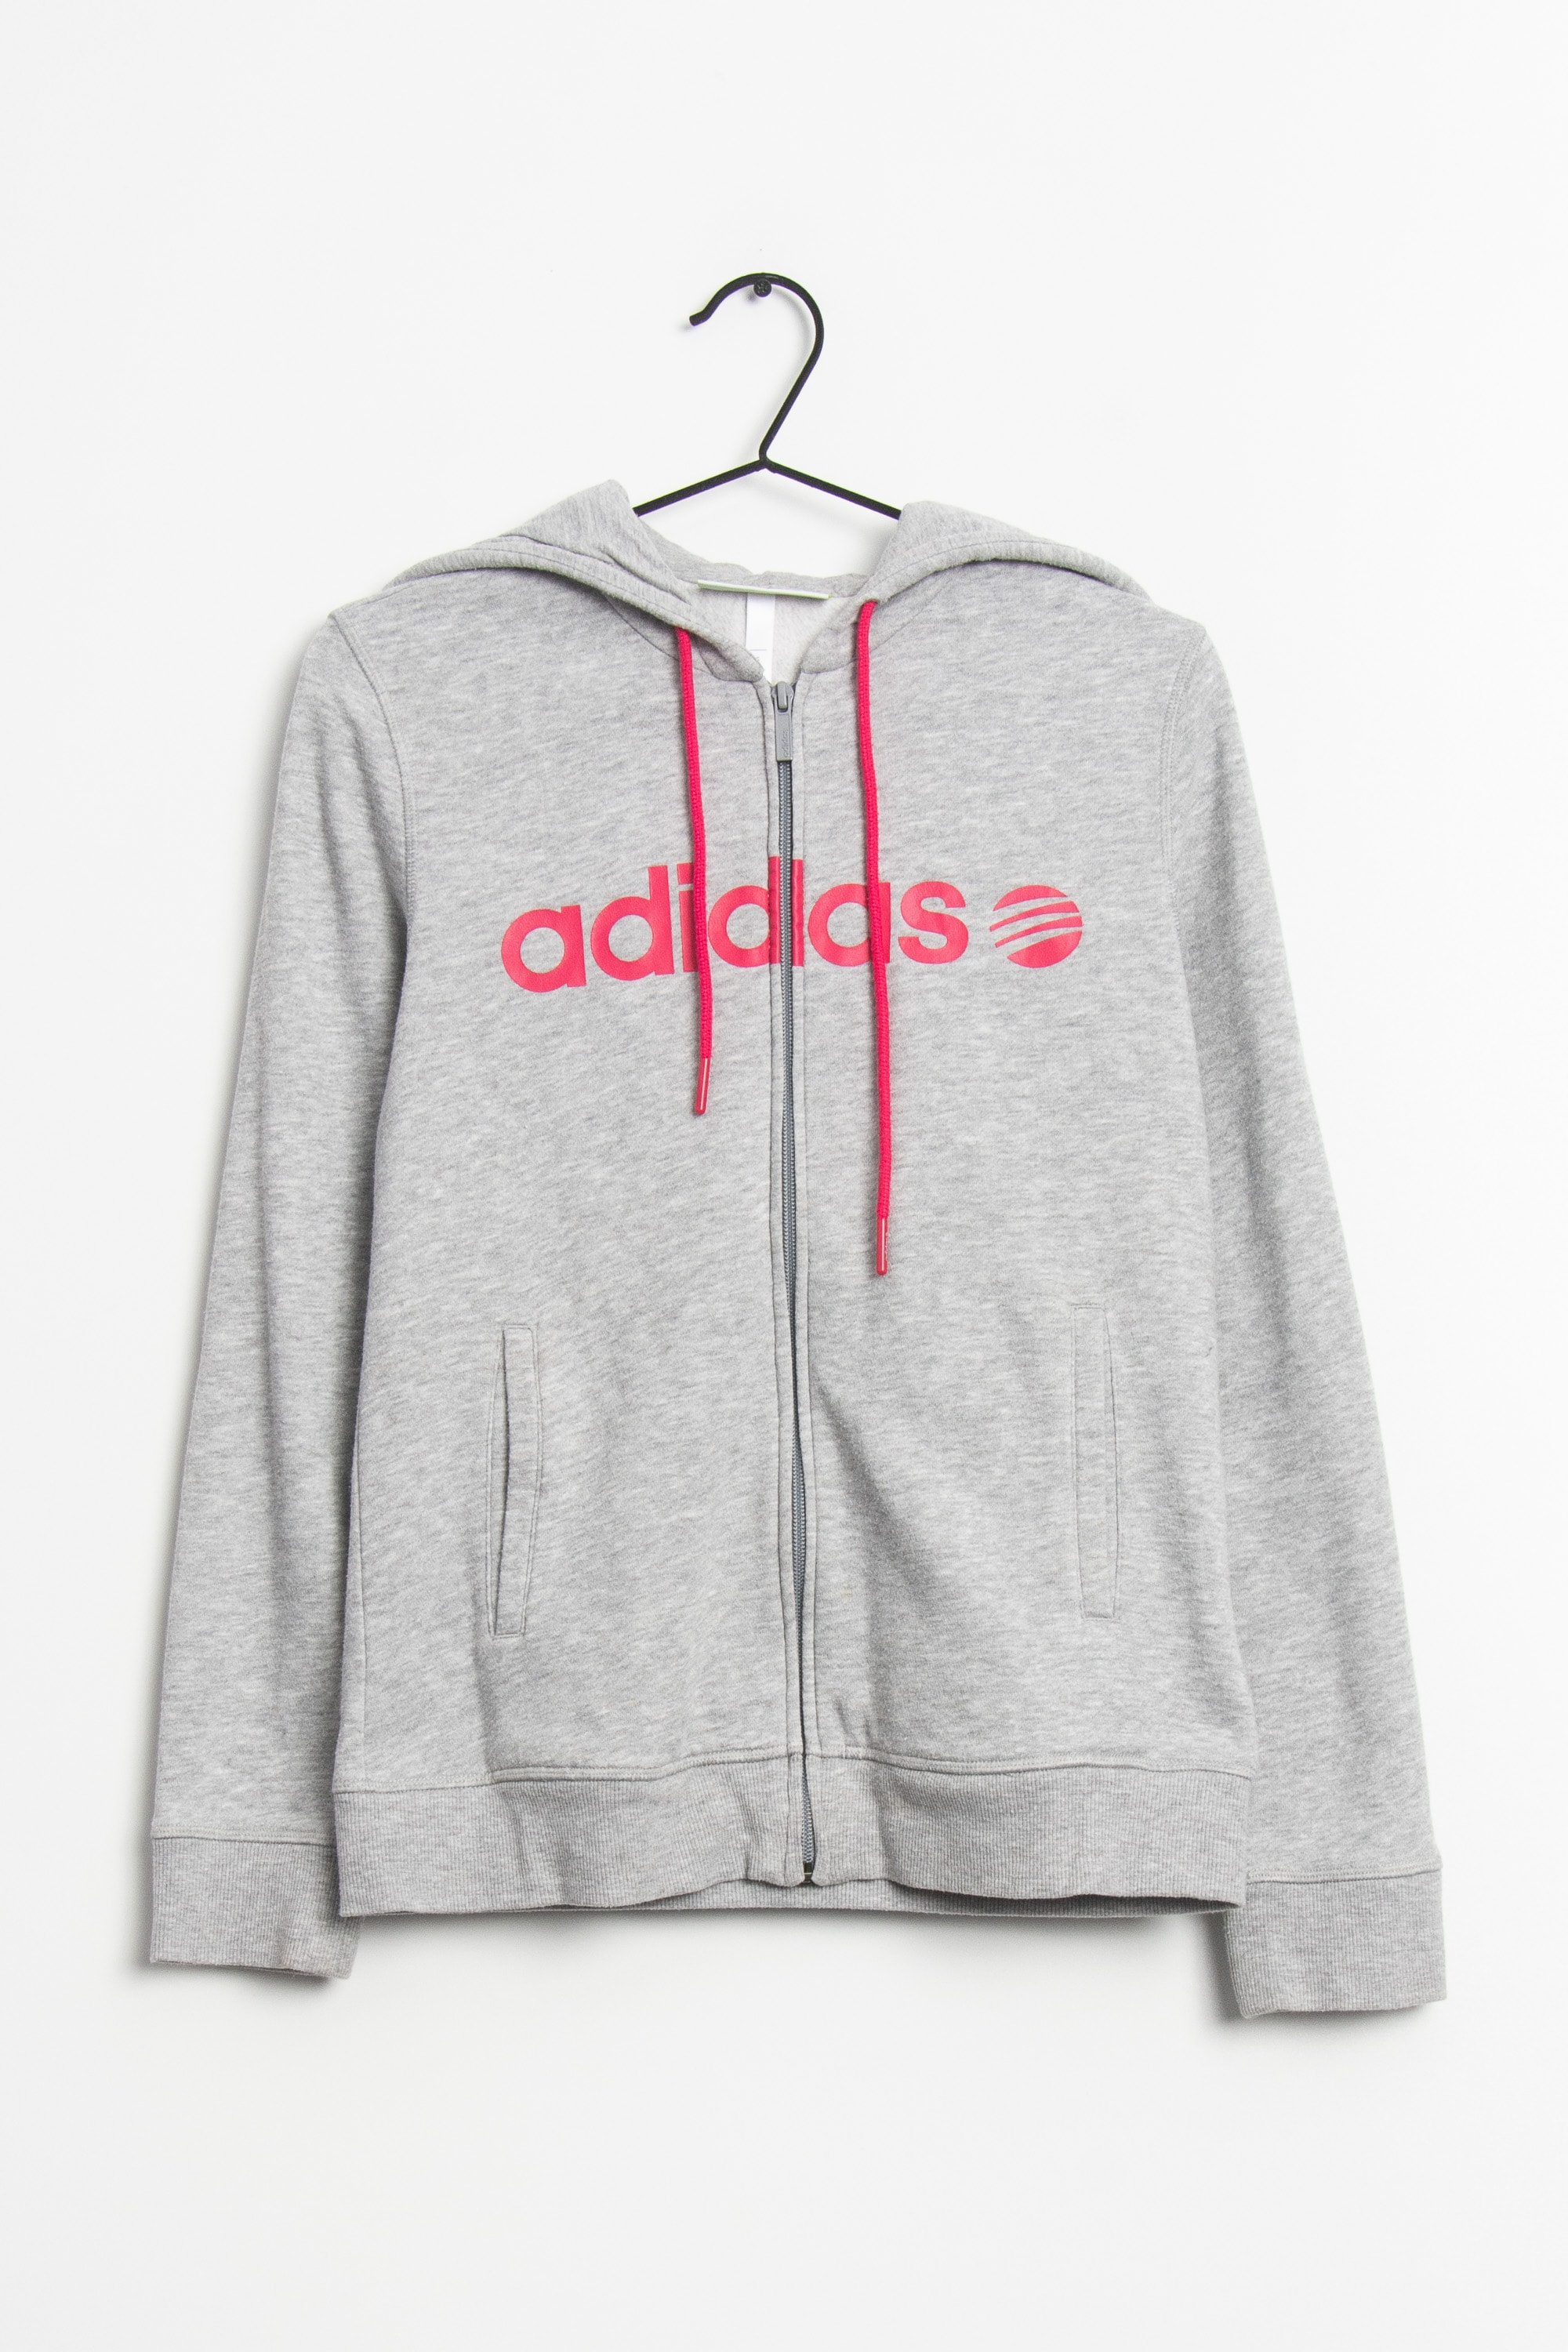 adidas Originals Sweat / Fleece Grau Gr.S